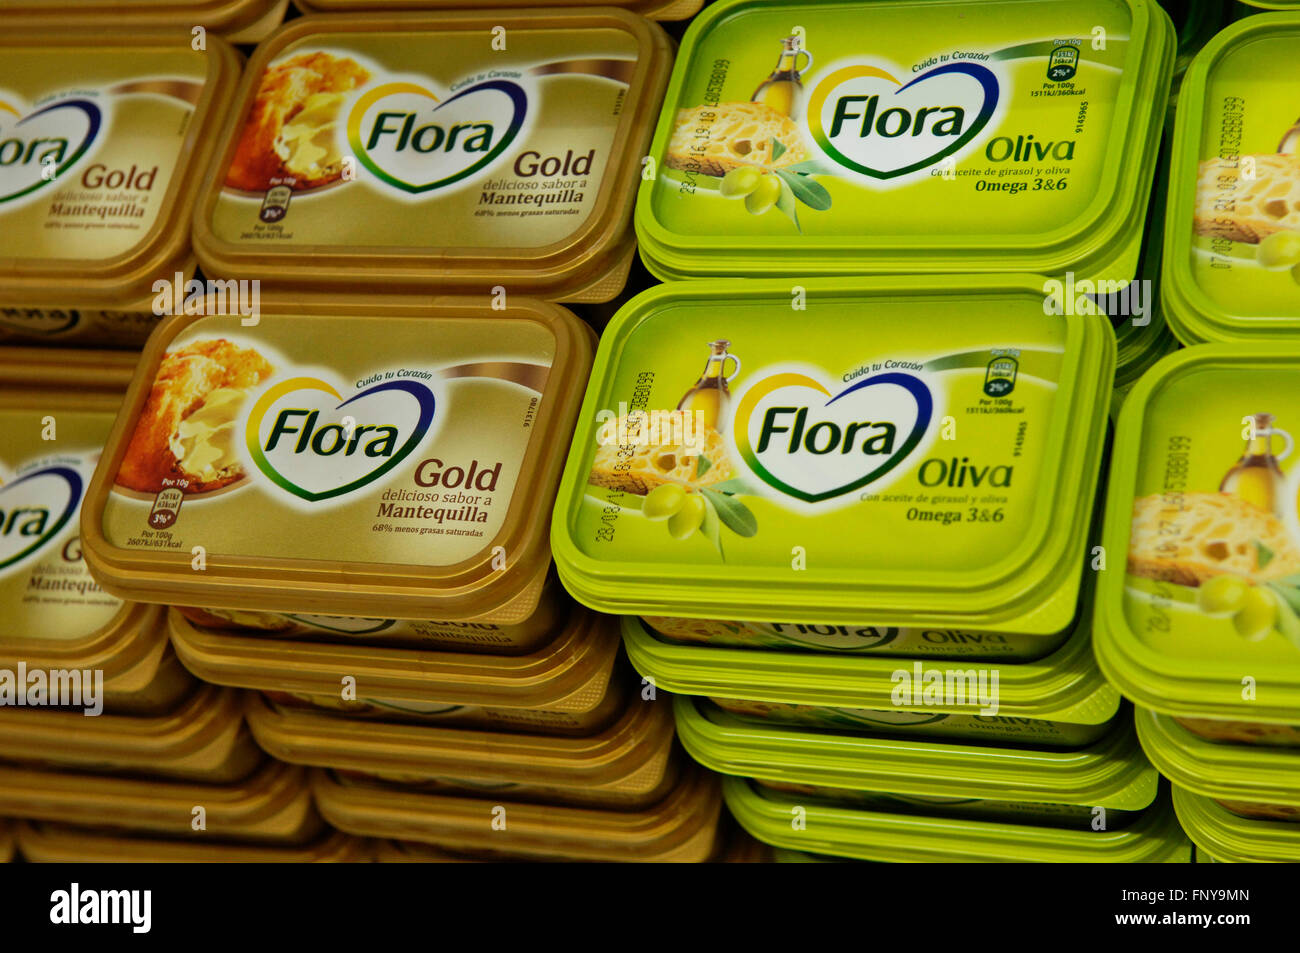 Flora Butter a Unilever Product - Stock Image